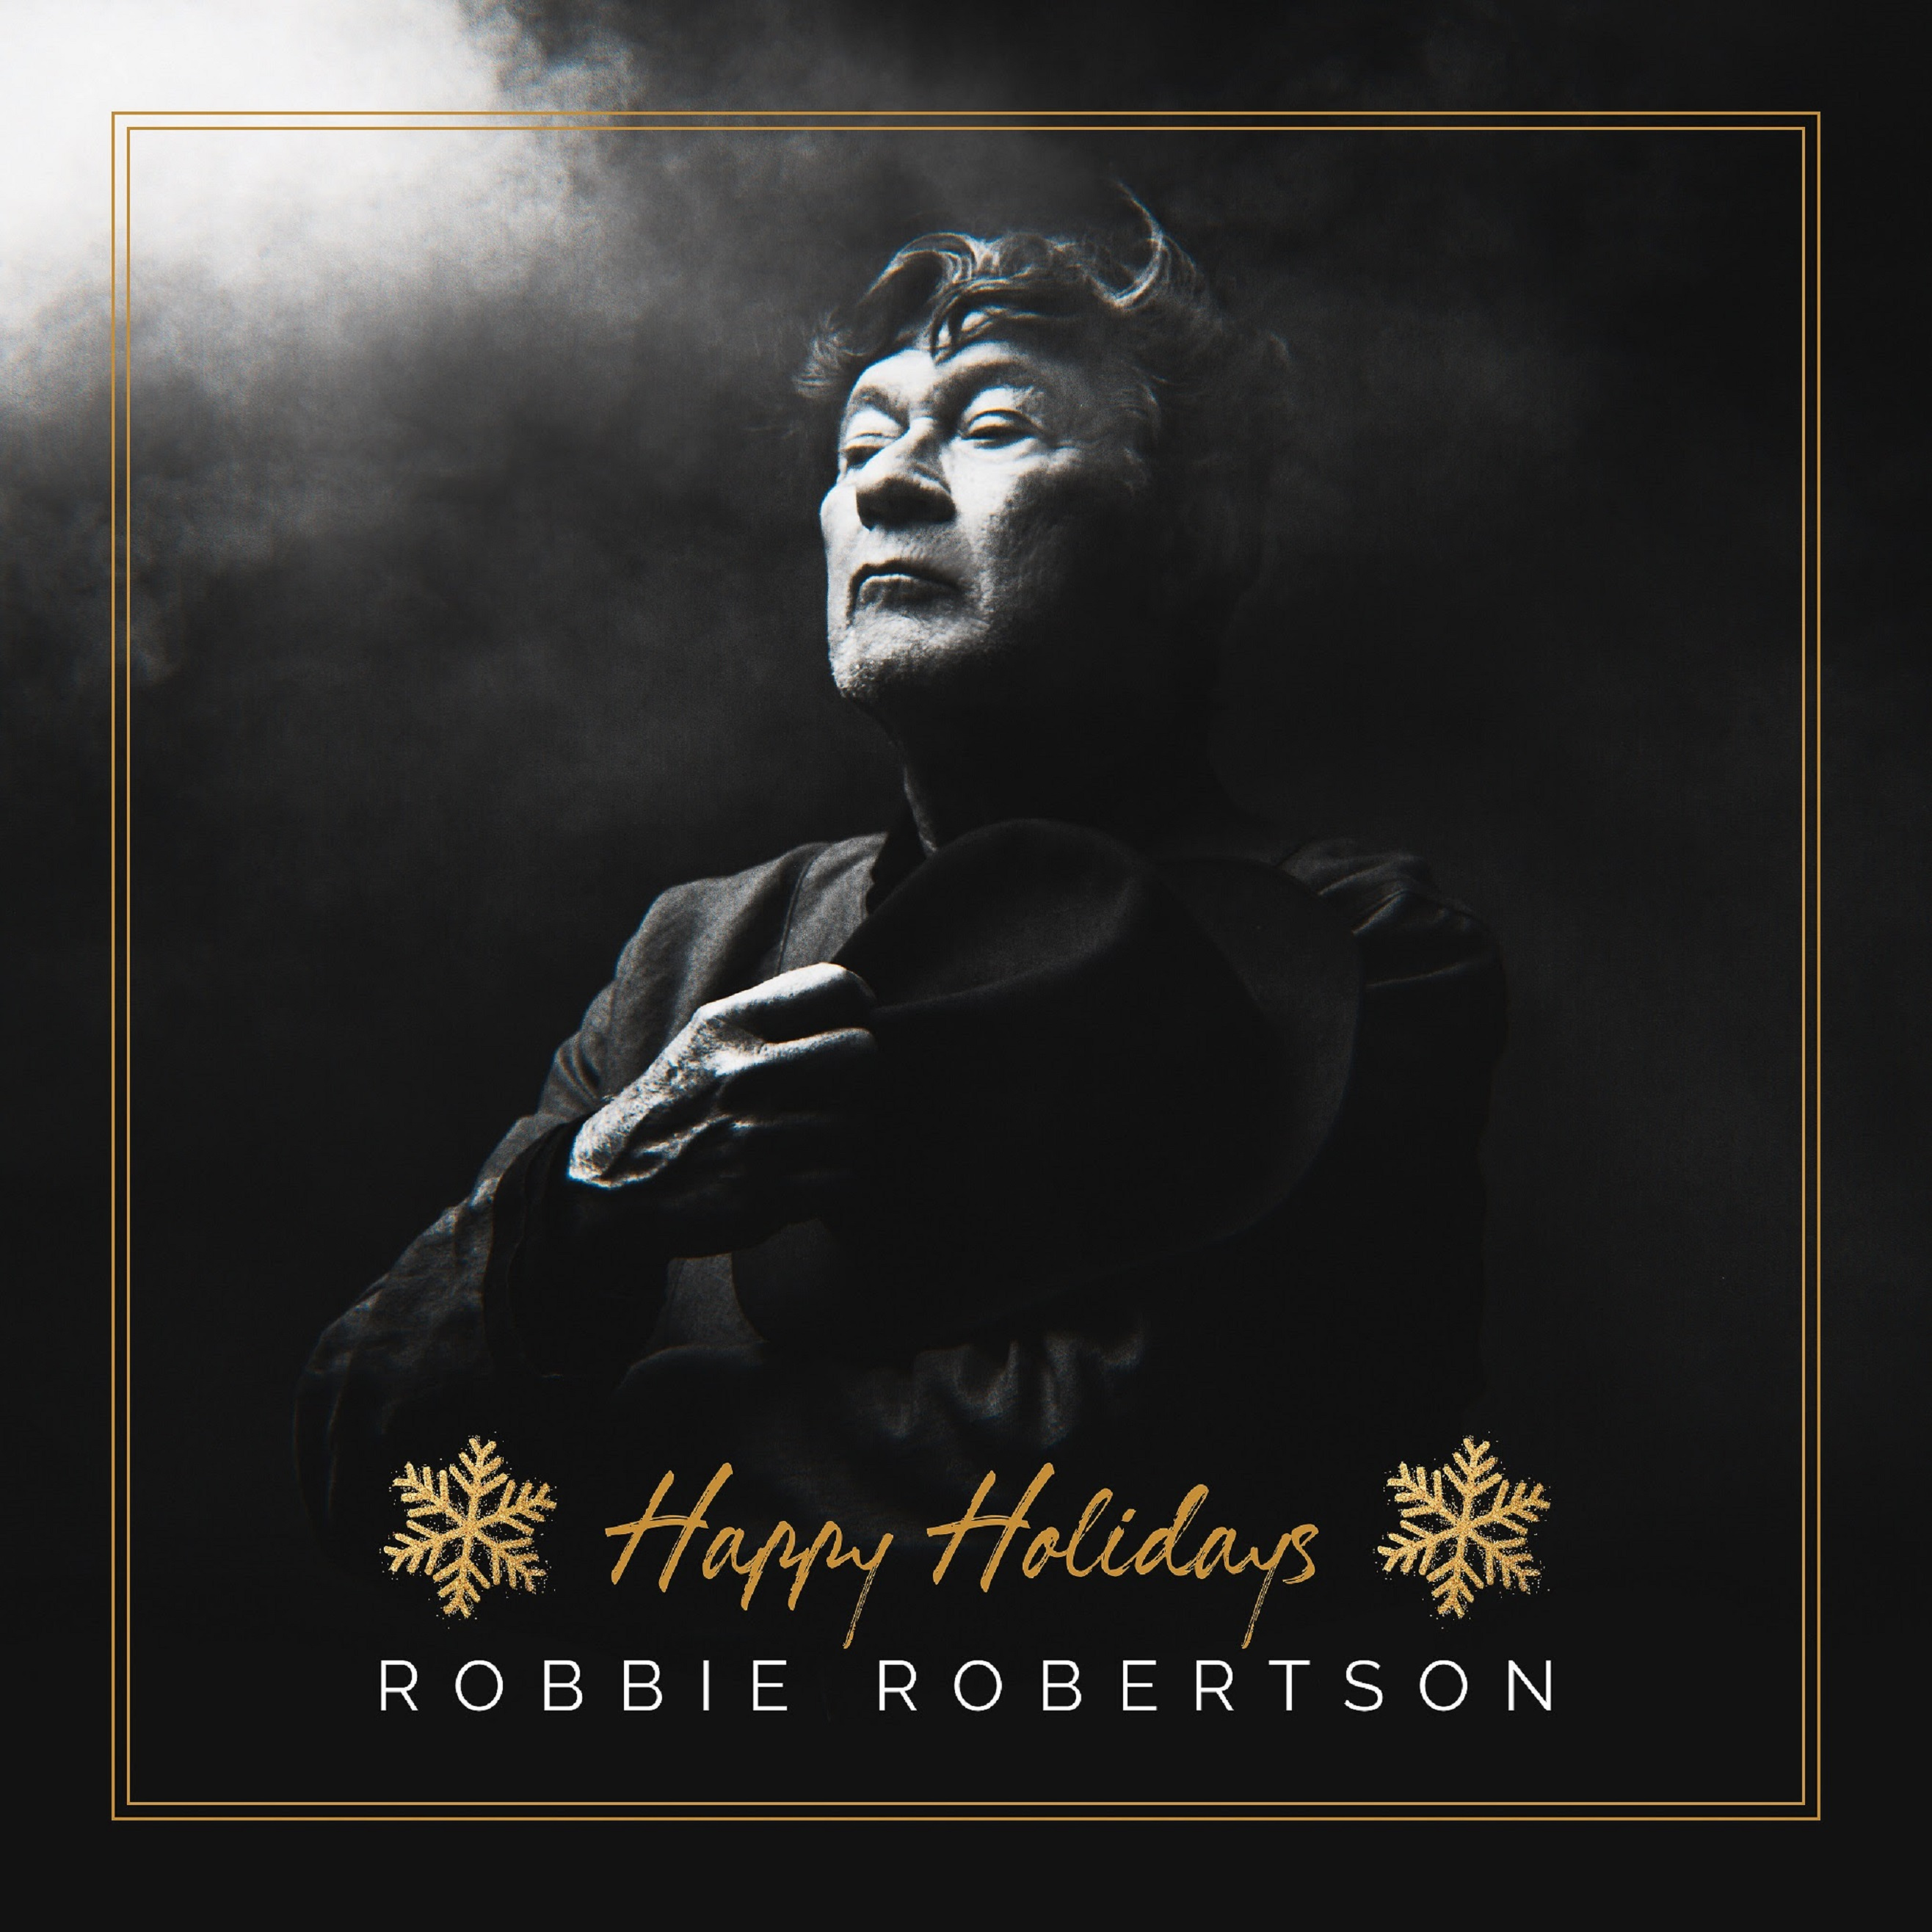 "Robbie Robertson Has Some Fun With Holiday Song Tradition On New Digital Single ""Happy Holidays"" Out Now"